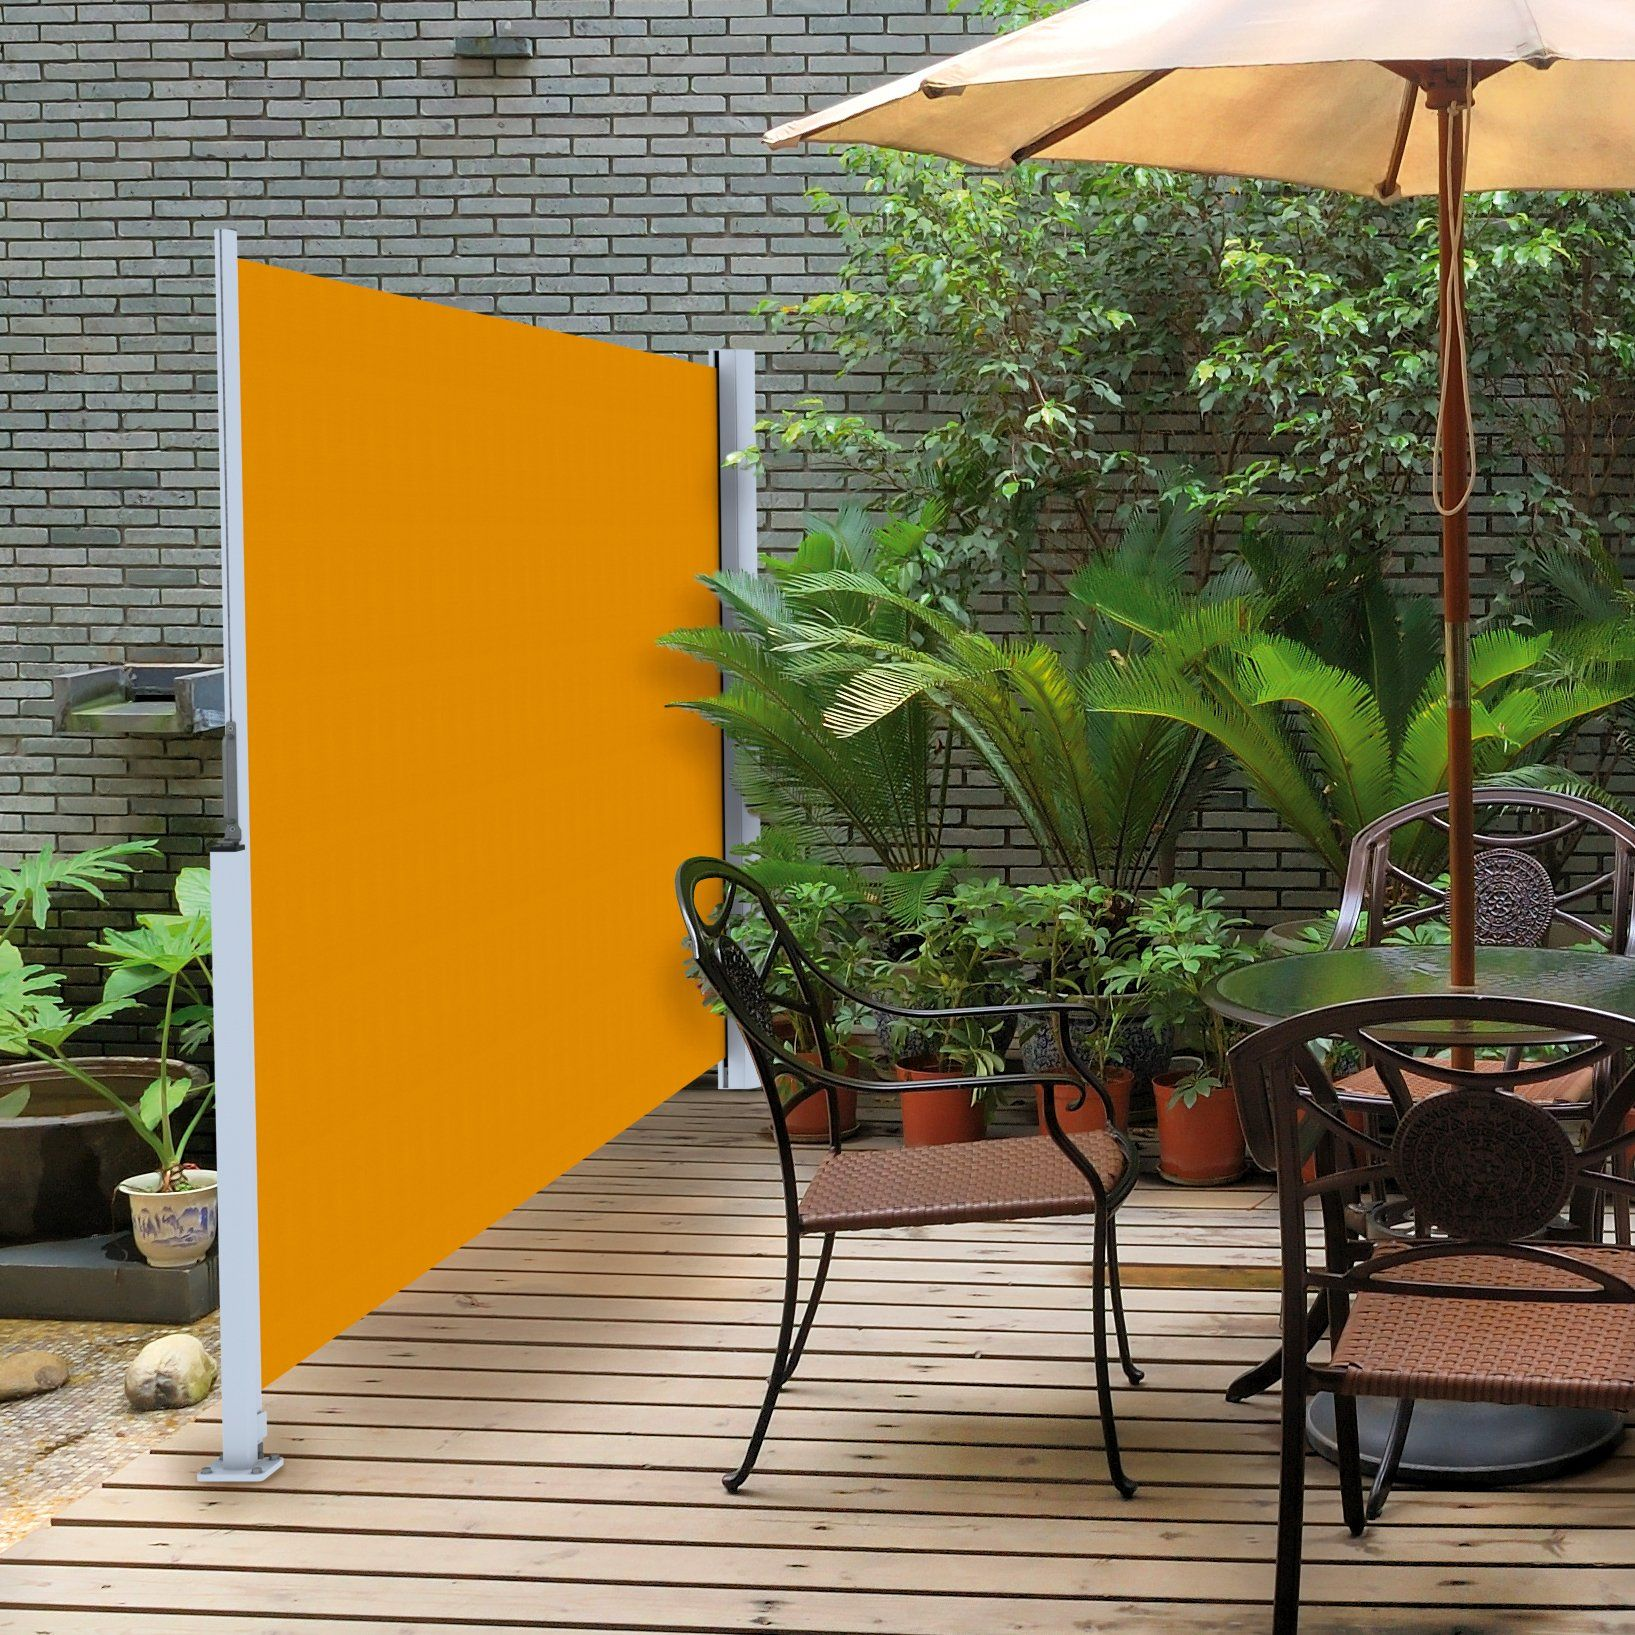 Paravent Mobile Pour Terrasse Retractable Fabric Privacy Panels It Can Be Used As Wind